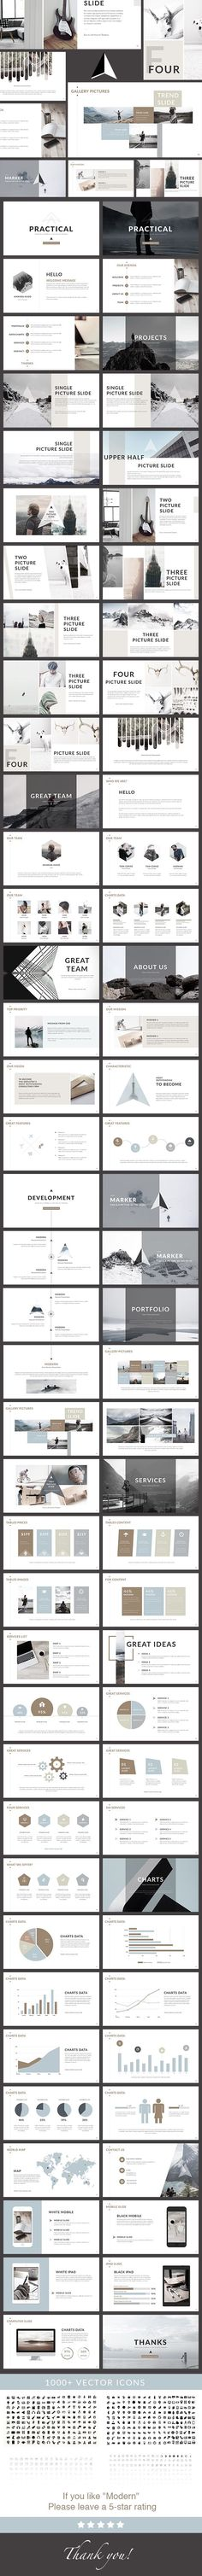 Design presentation power point layout 36 ideas for 2019 Layout Design, Design Portfolio Layout, Graphisches Design, Buch Design, Slide Design, Clean Design, Design Ideas, Keynote Design, Design Brochure